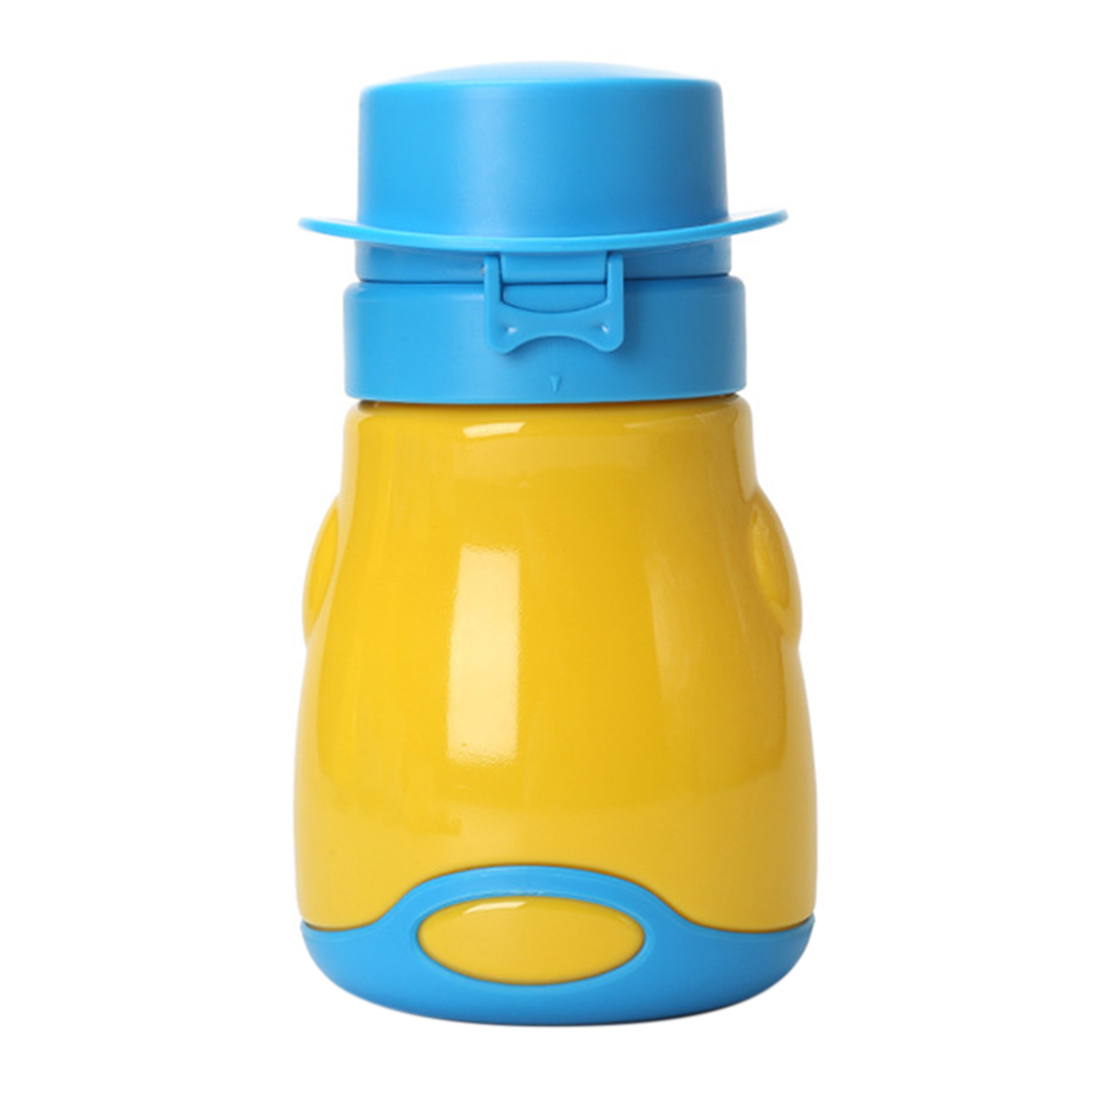 Portable Baby Potty Pee Bottle Leak Proof Emergency Toilet For Children Baby Toilet Kid Travel Folding Man Woman Pee Tool-Yellow